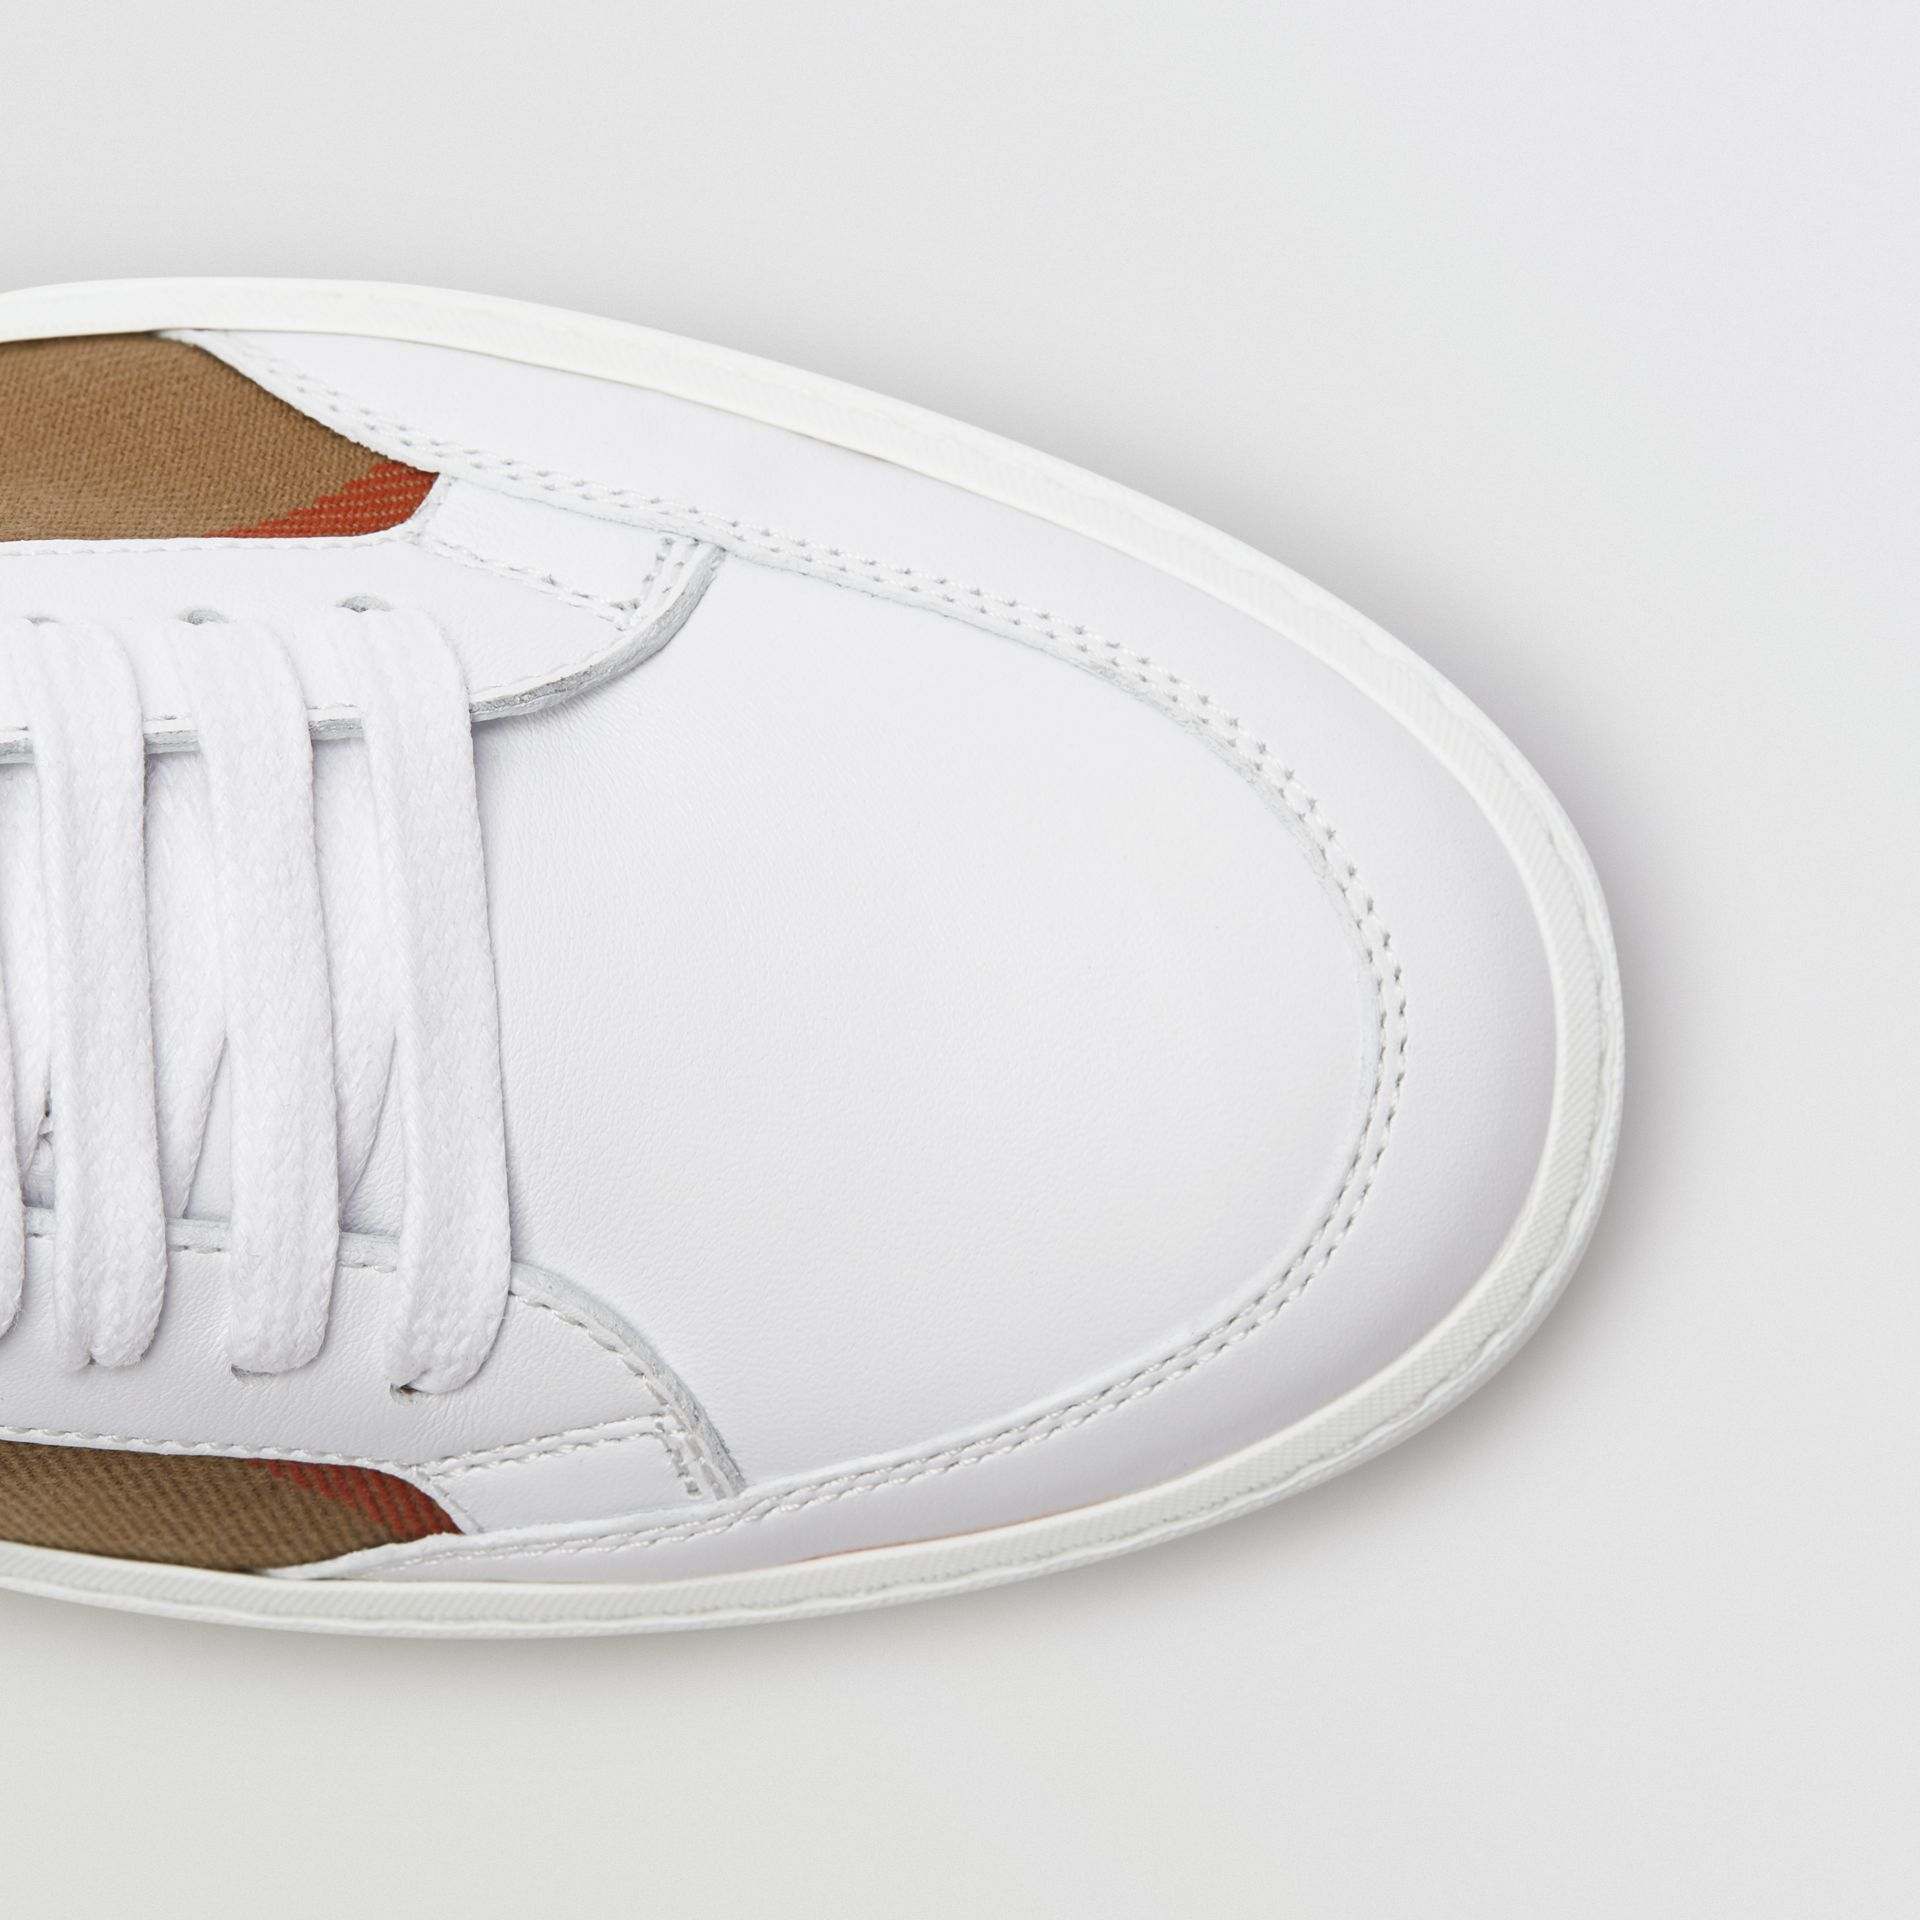 Check Detail Leather Sneakers in House Check/ Optic White - Women | Burberry Australia - gallery image 1